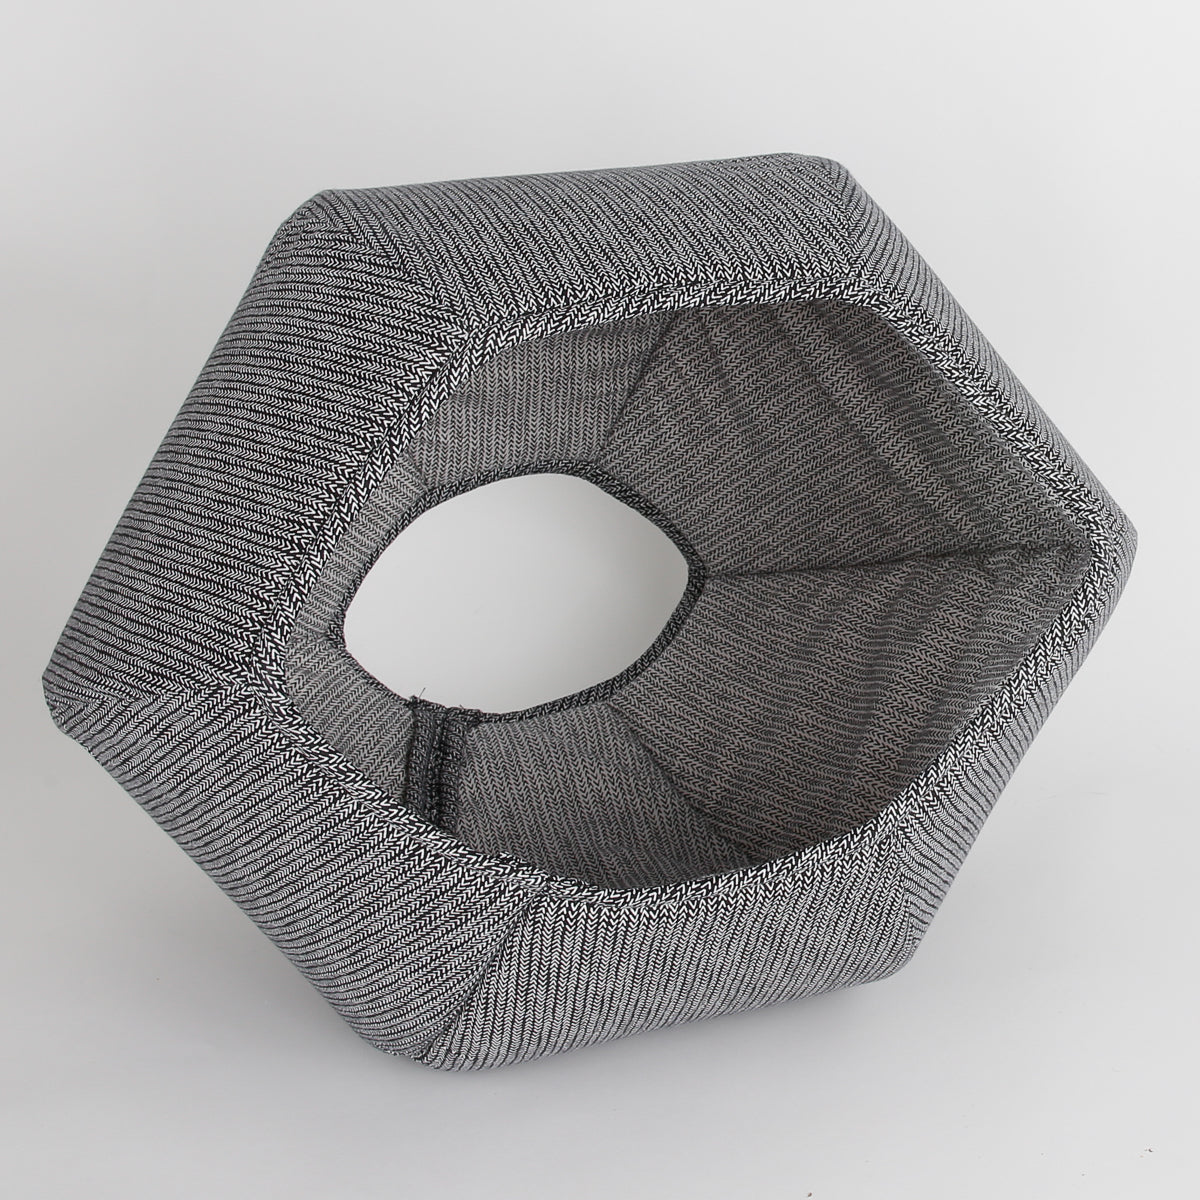 Our Hexagonal Cat · The Cat Ball® Cat Bed Is A Modern Cat Bed Design.